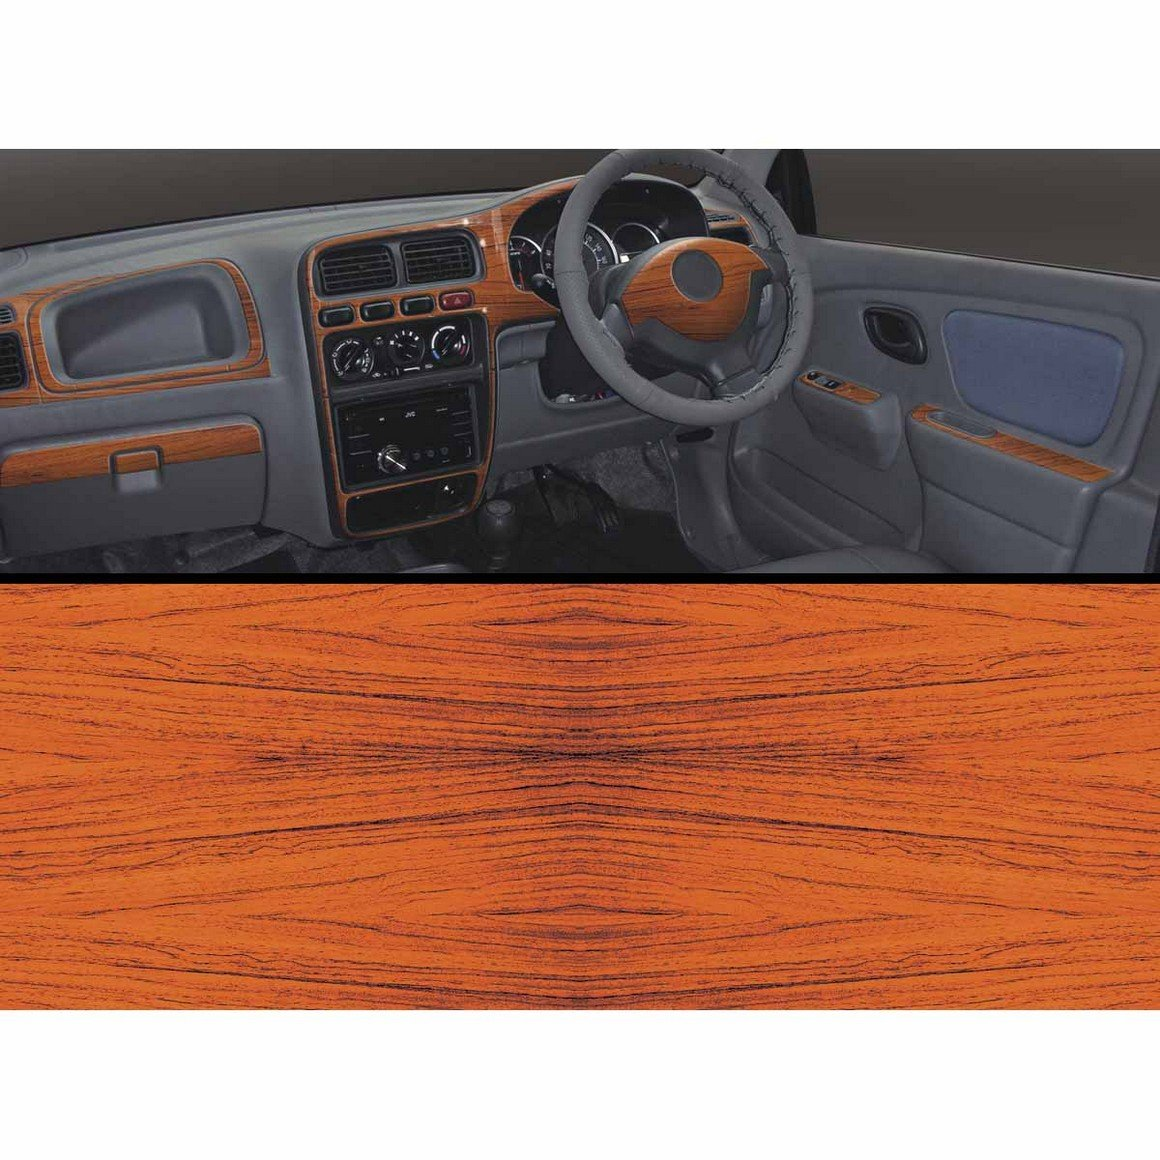 Autographix basic dashboard trims for maruti alto k10 vxi rosewood amazon in car motorbike